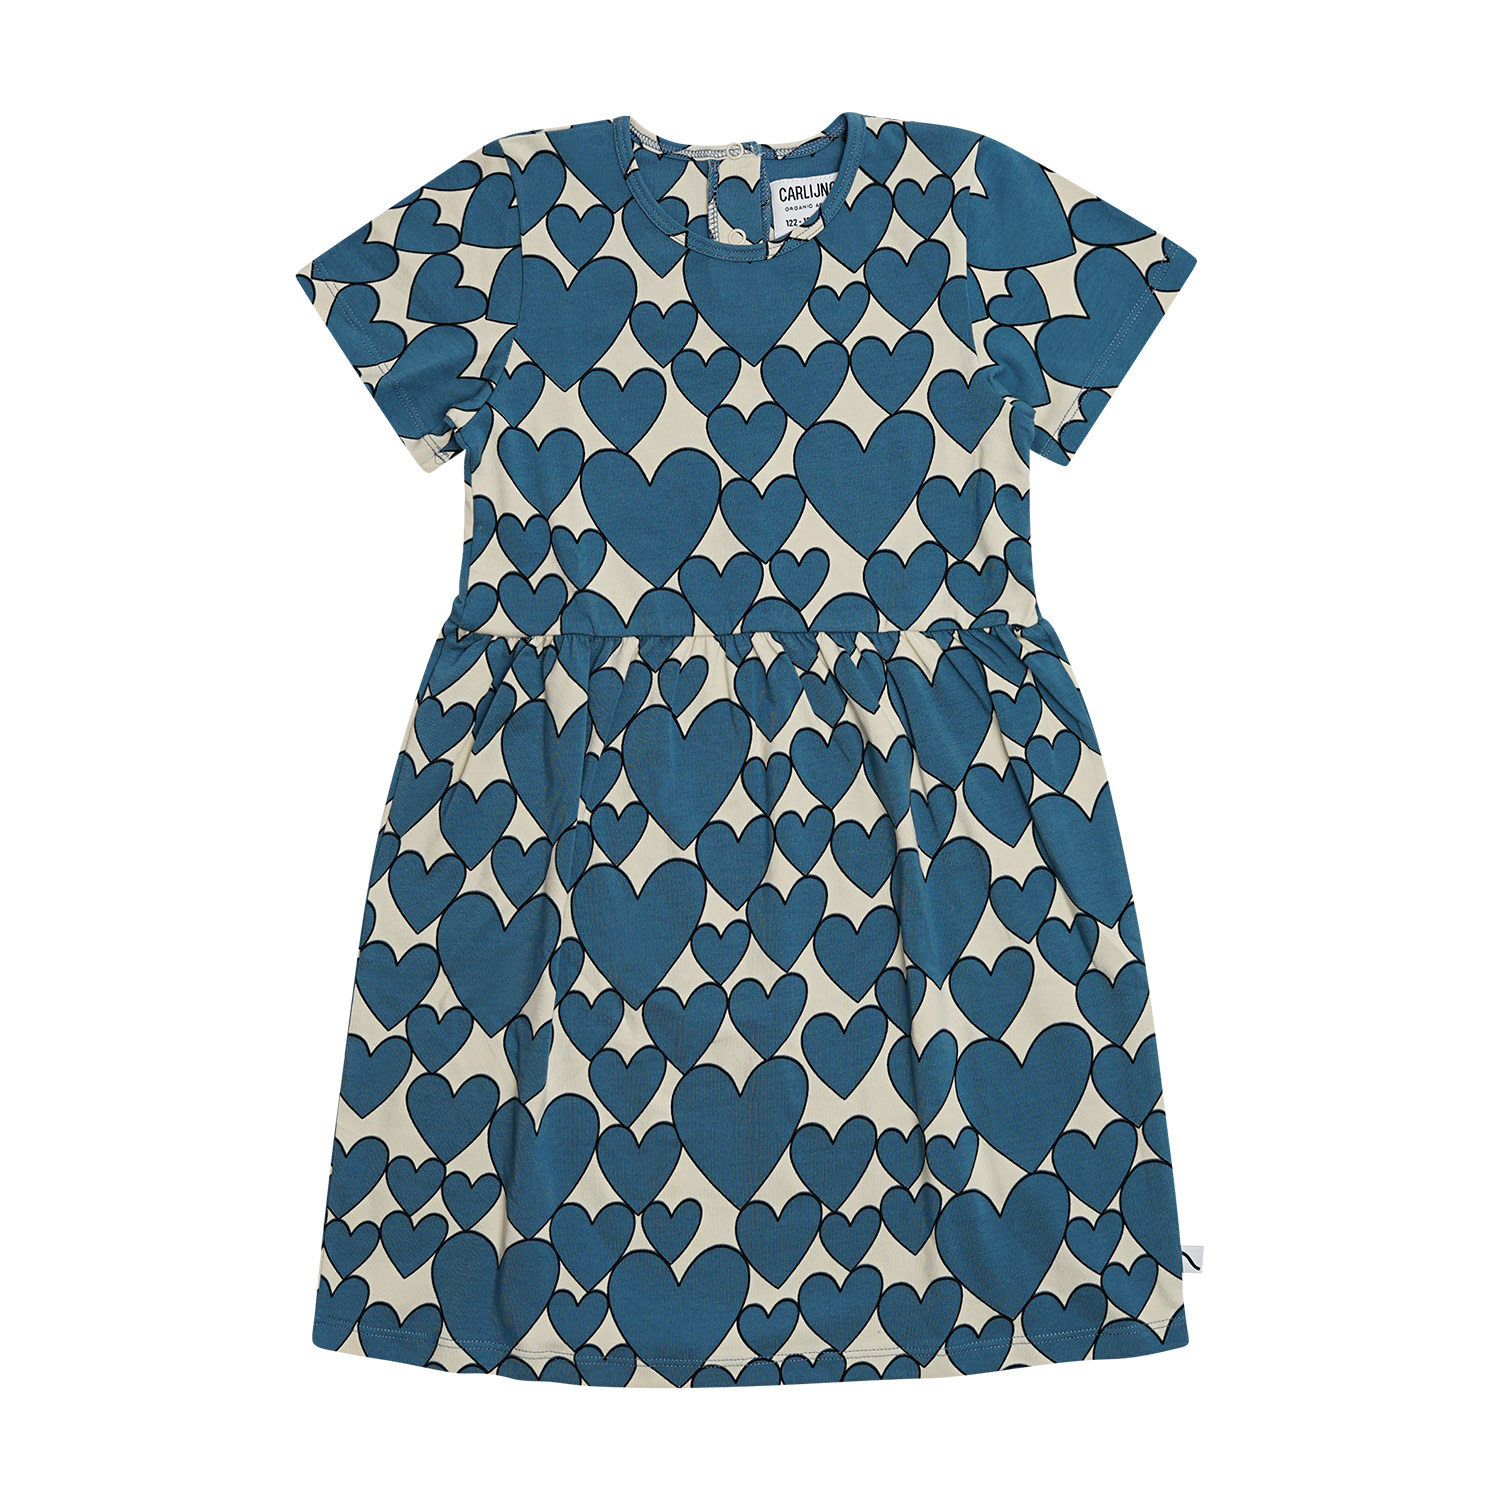 CarlijnQ Hearts dress short sleeves